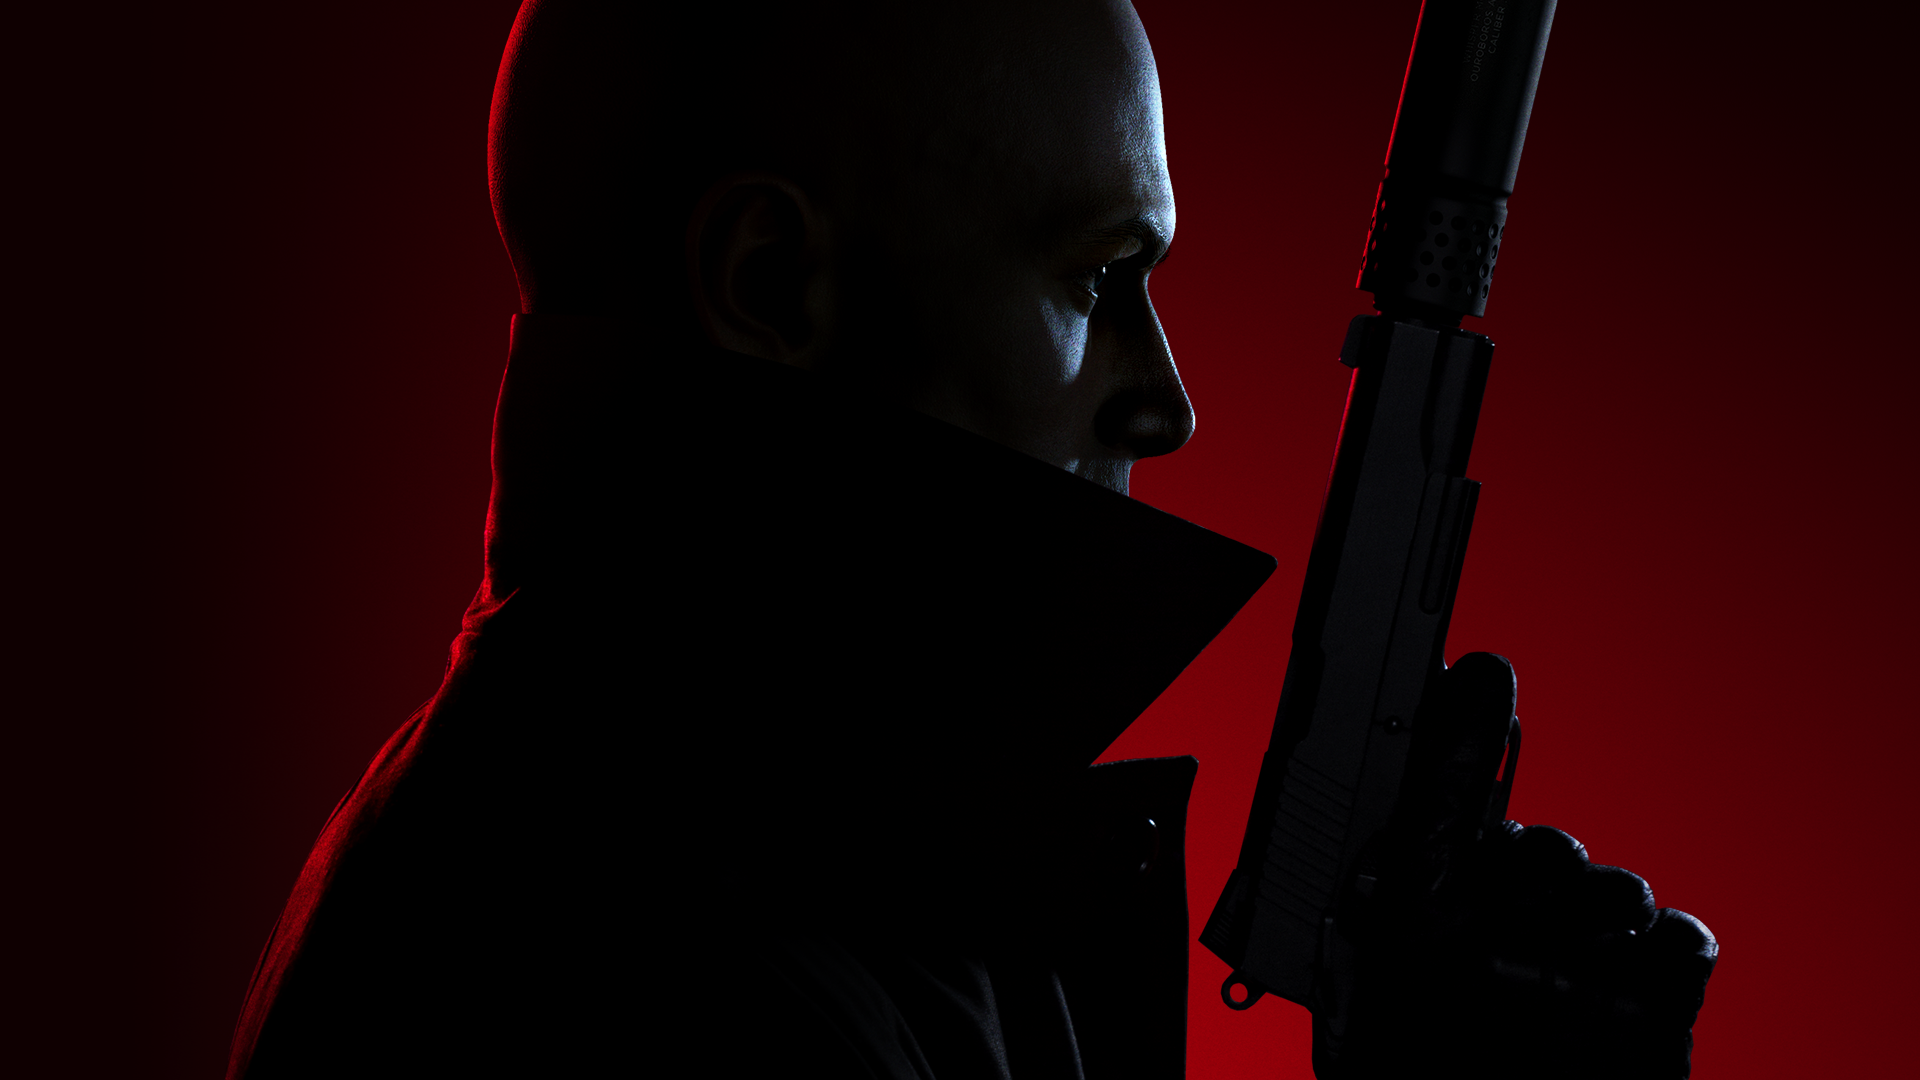 Hitman 3's opening cinematic puts Providence in Agent 47's crosshairs